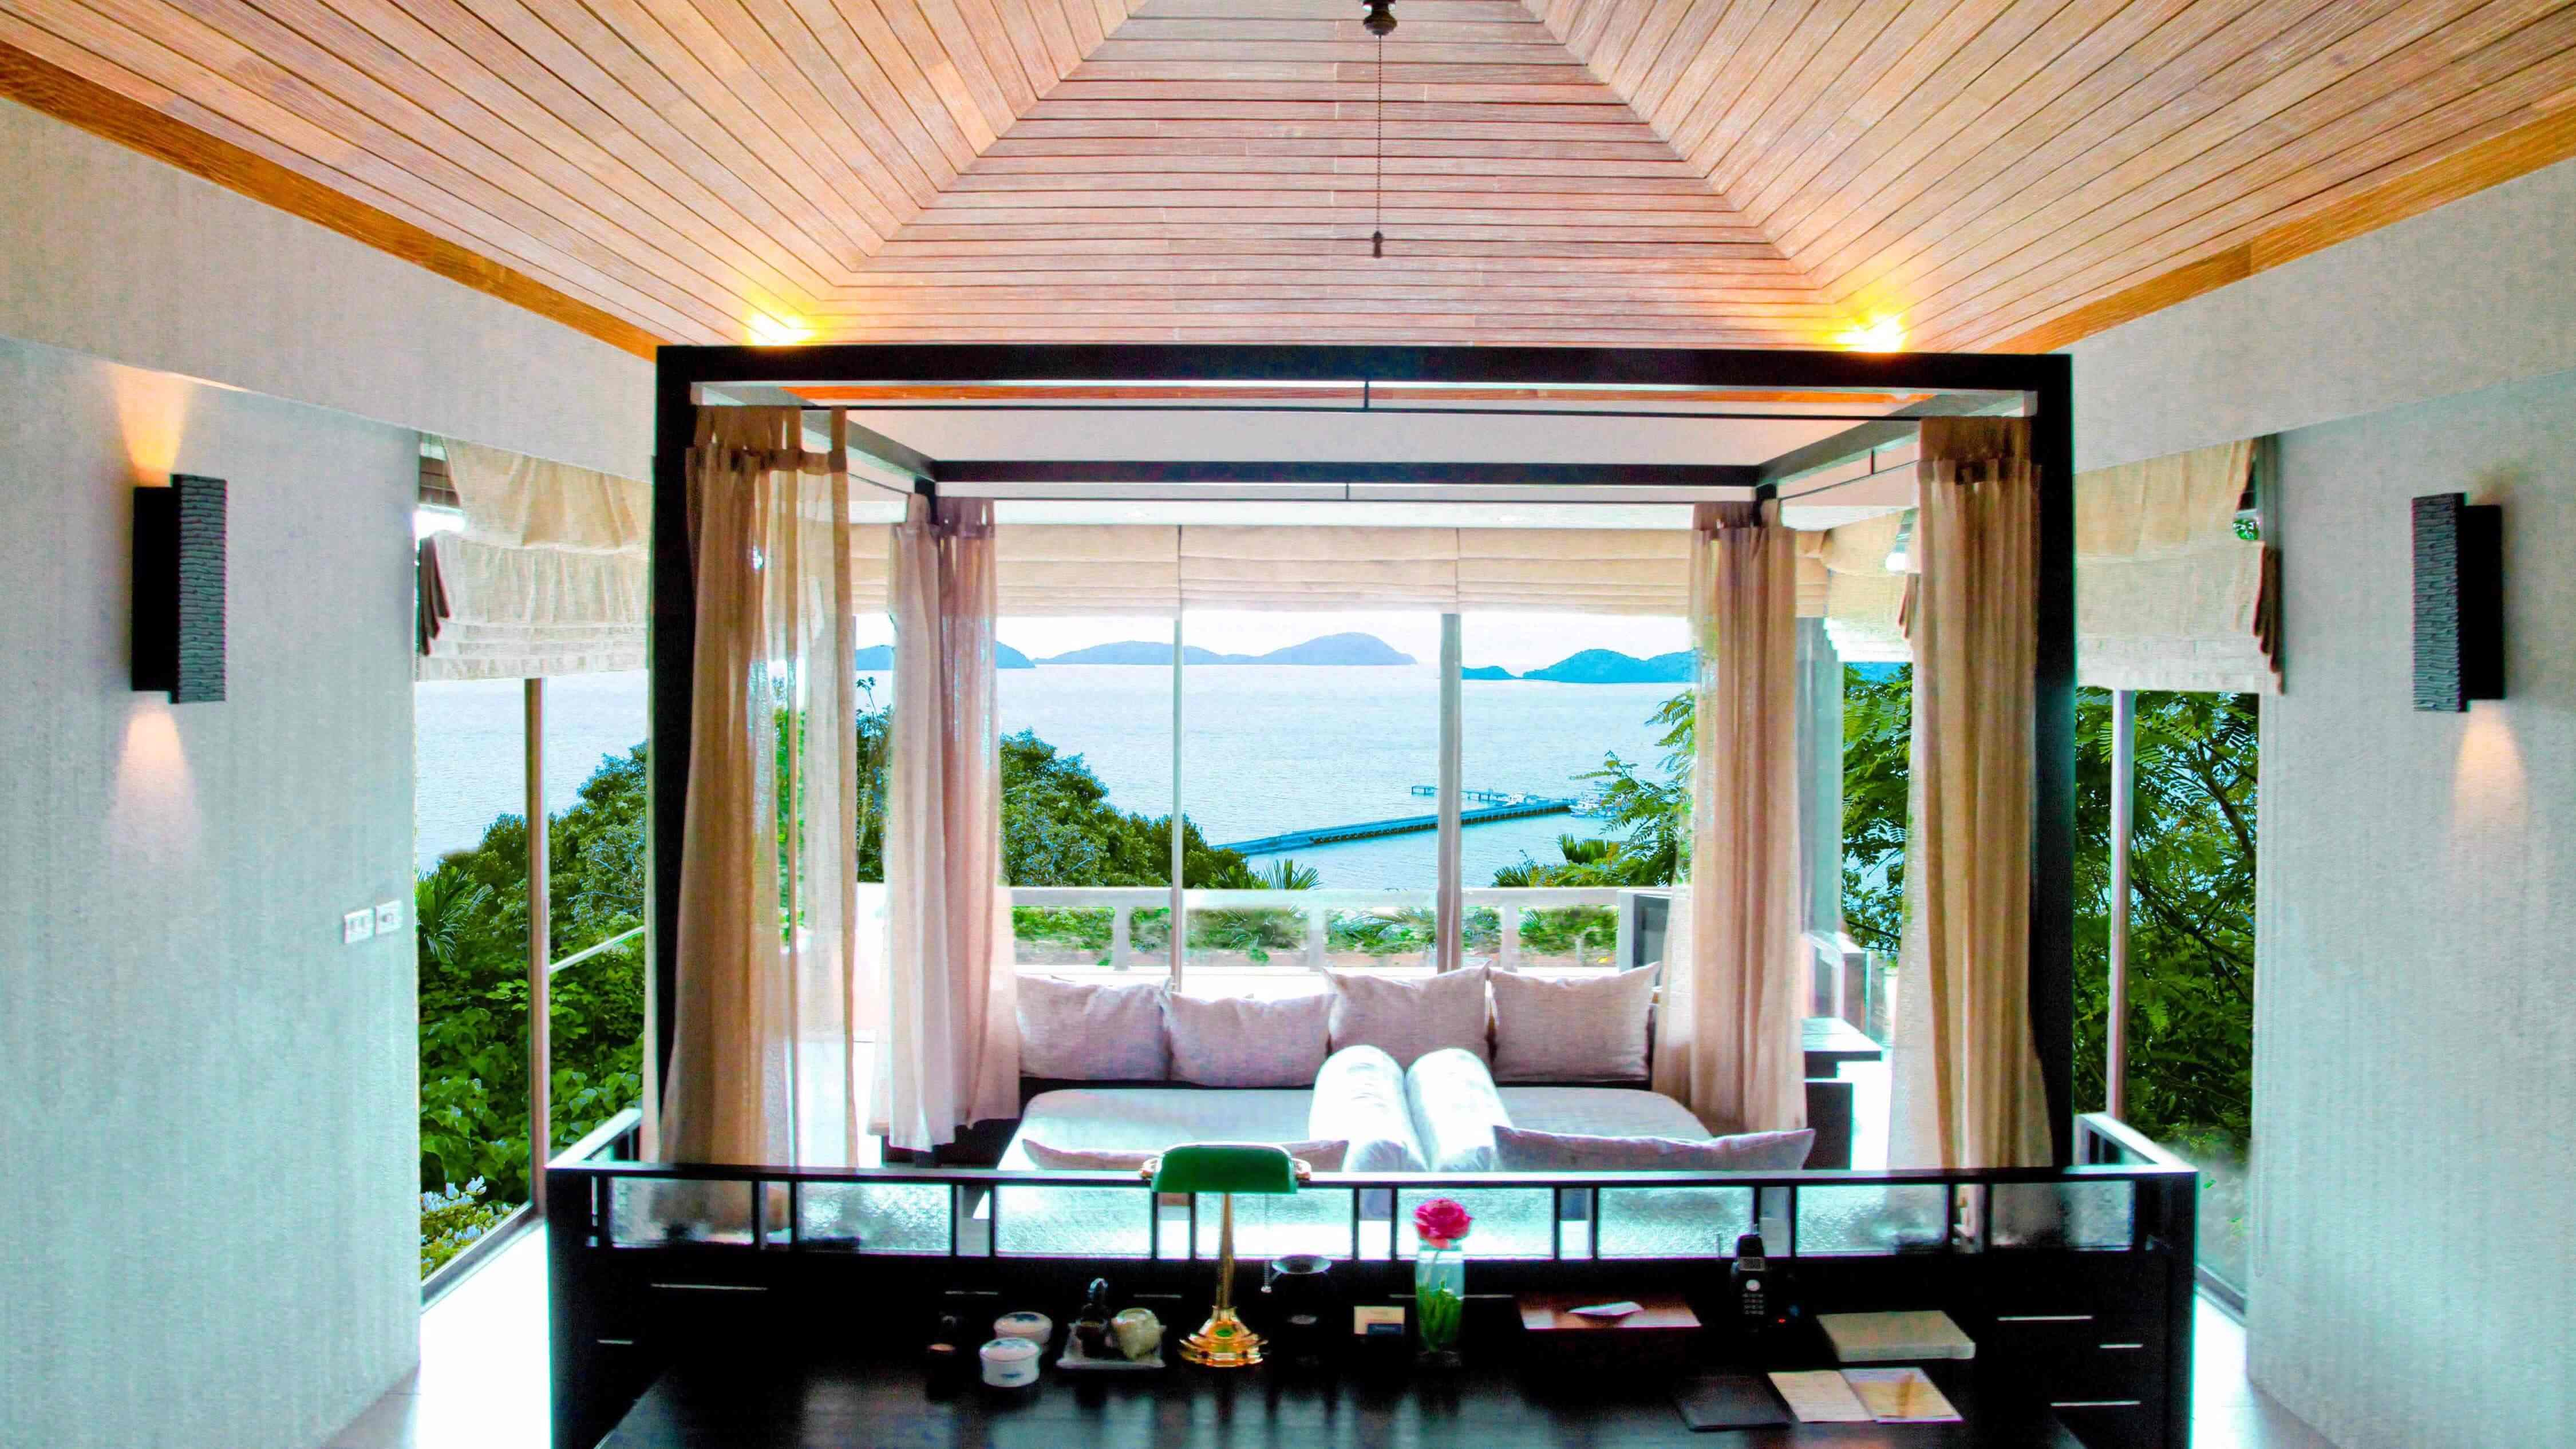 One bedroom luxury pool villa type b sri panwa phuket for Pool villa design